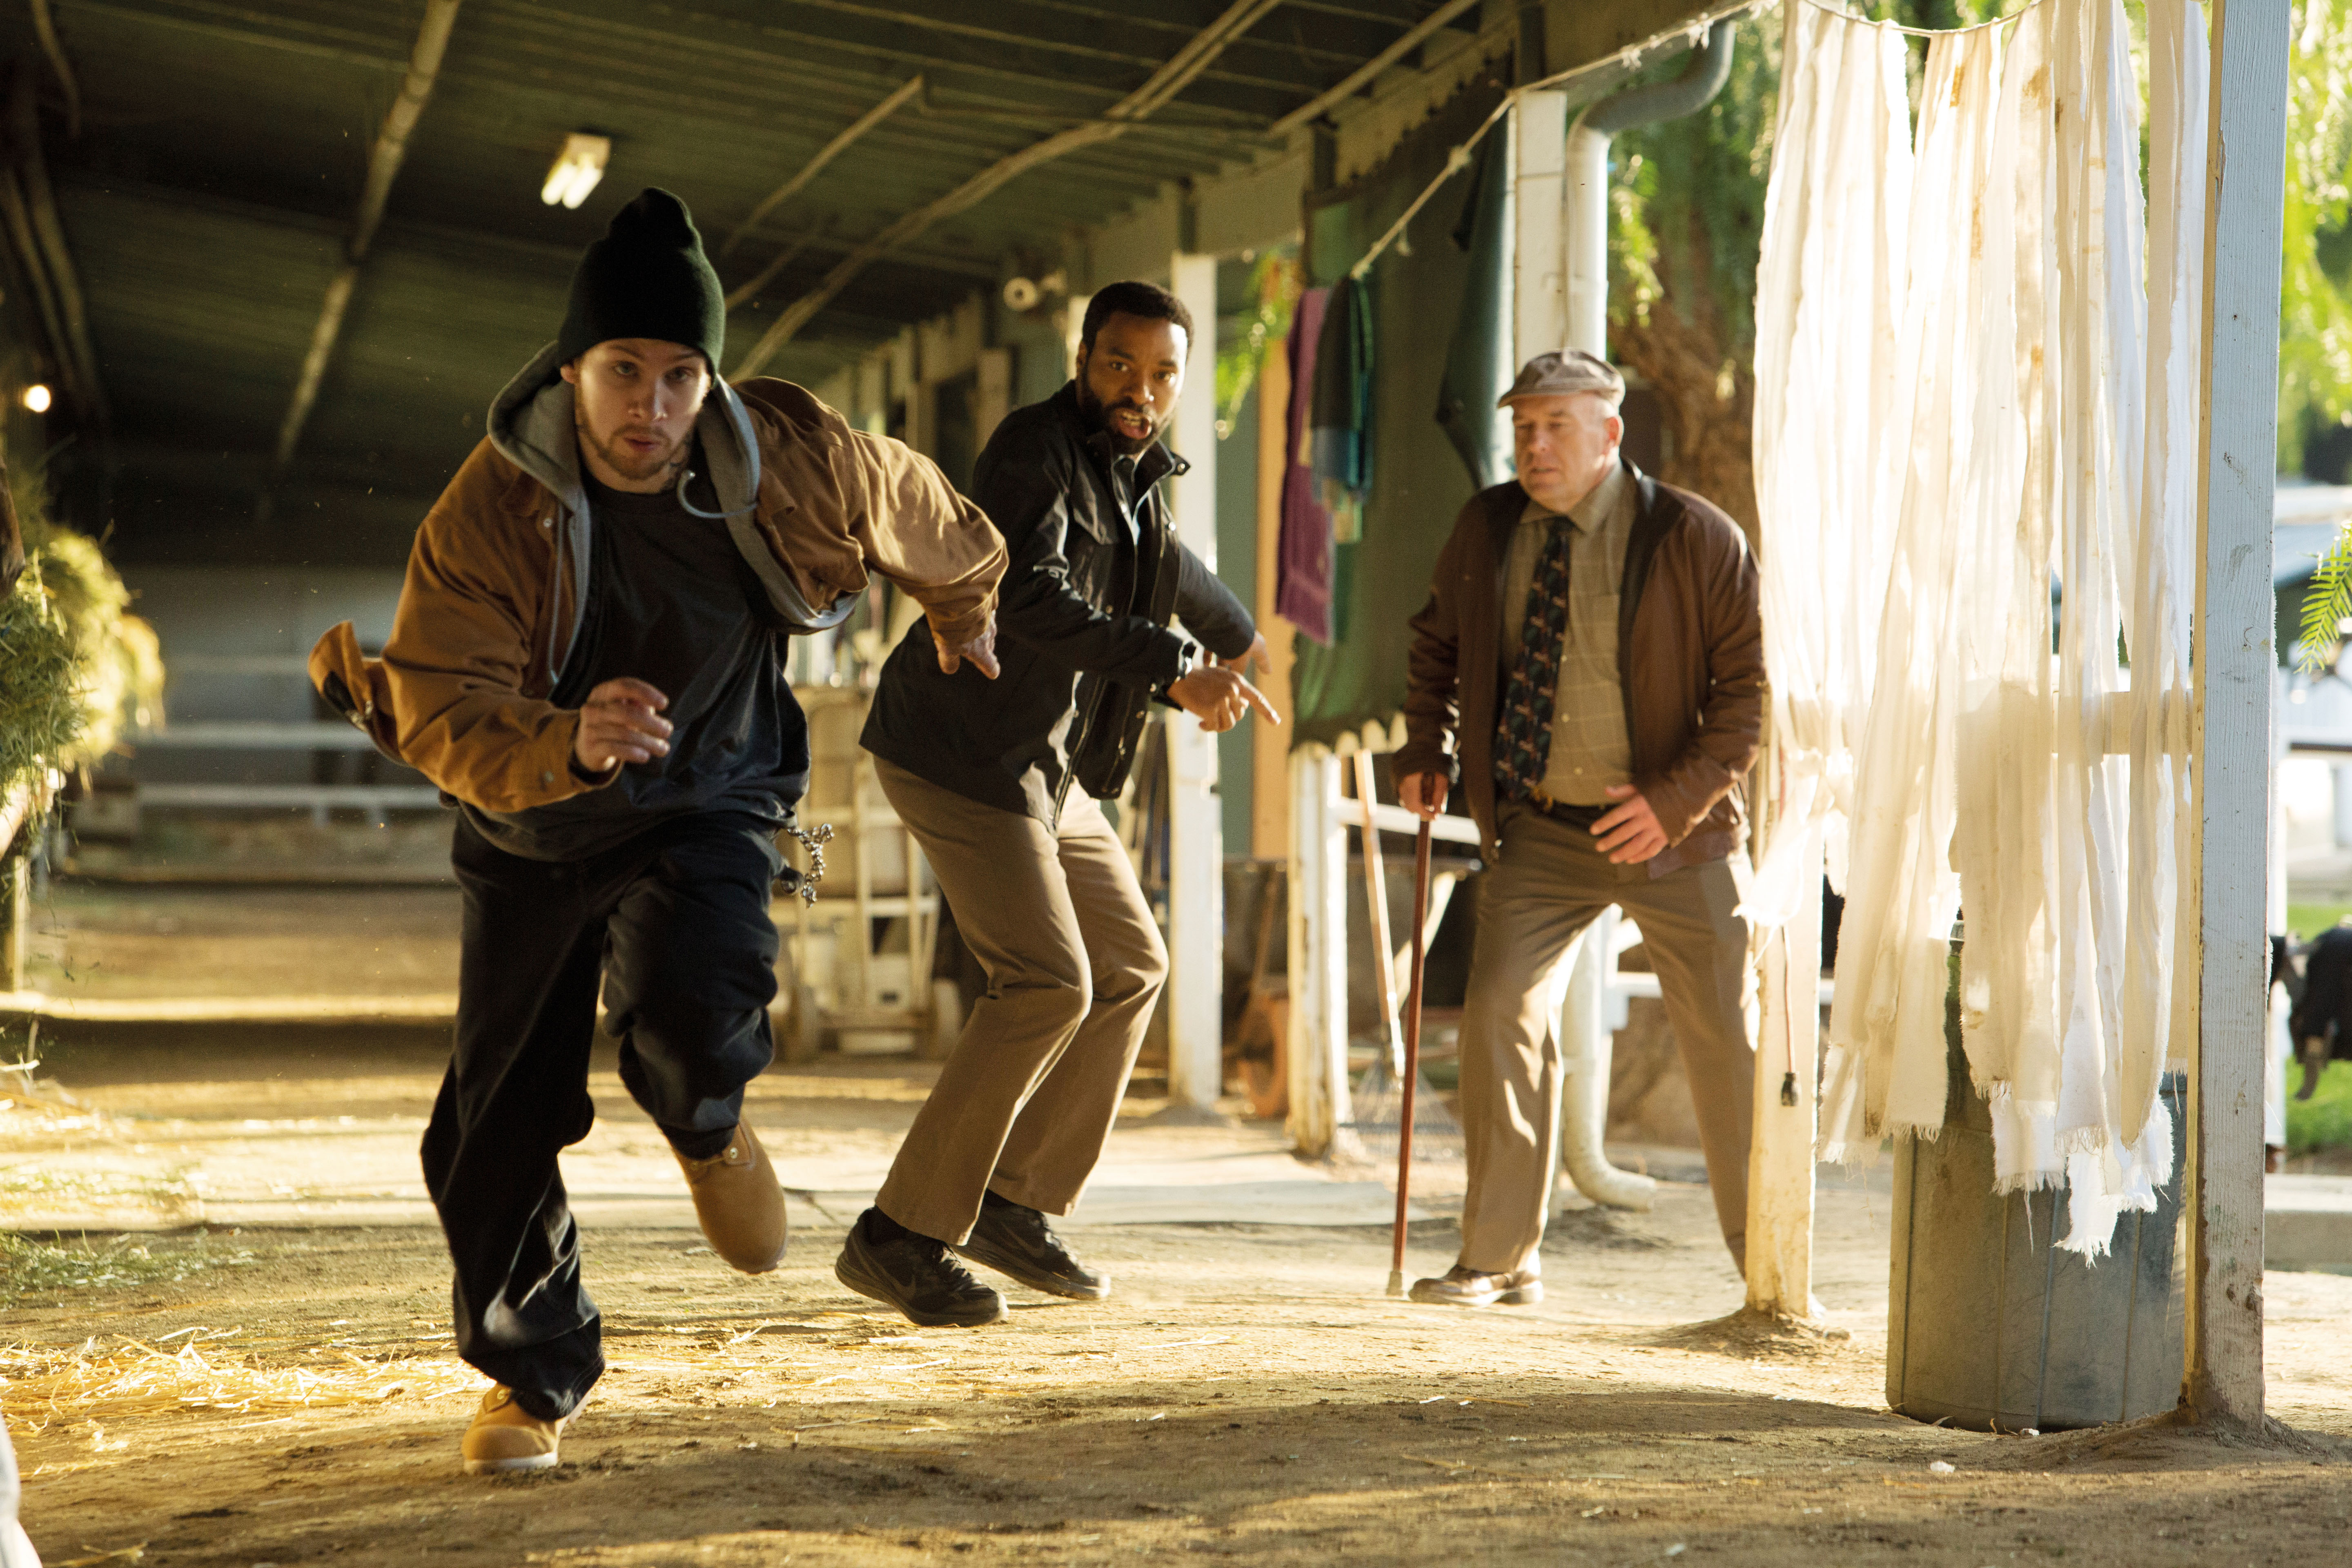 (L-R) JOE COLE, CHIWETEL EJIOFOR, and DEAN NORRIS star in SECRET IN THEIR EYES.